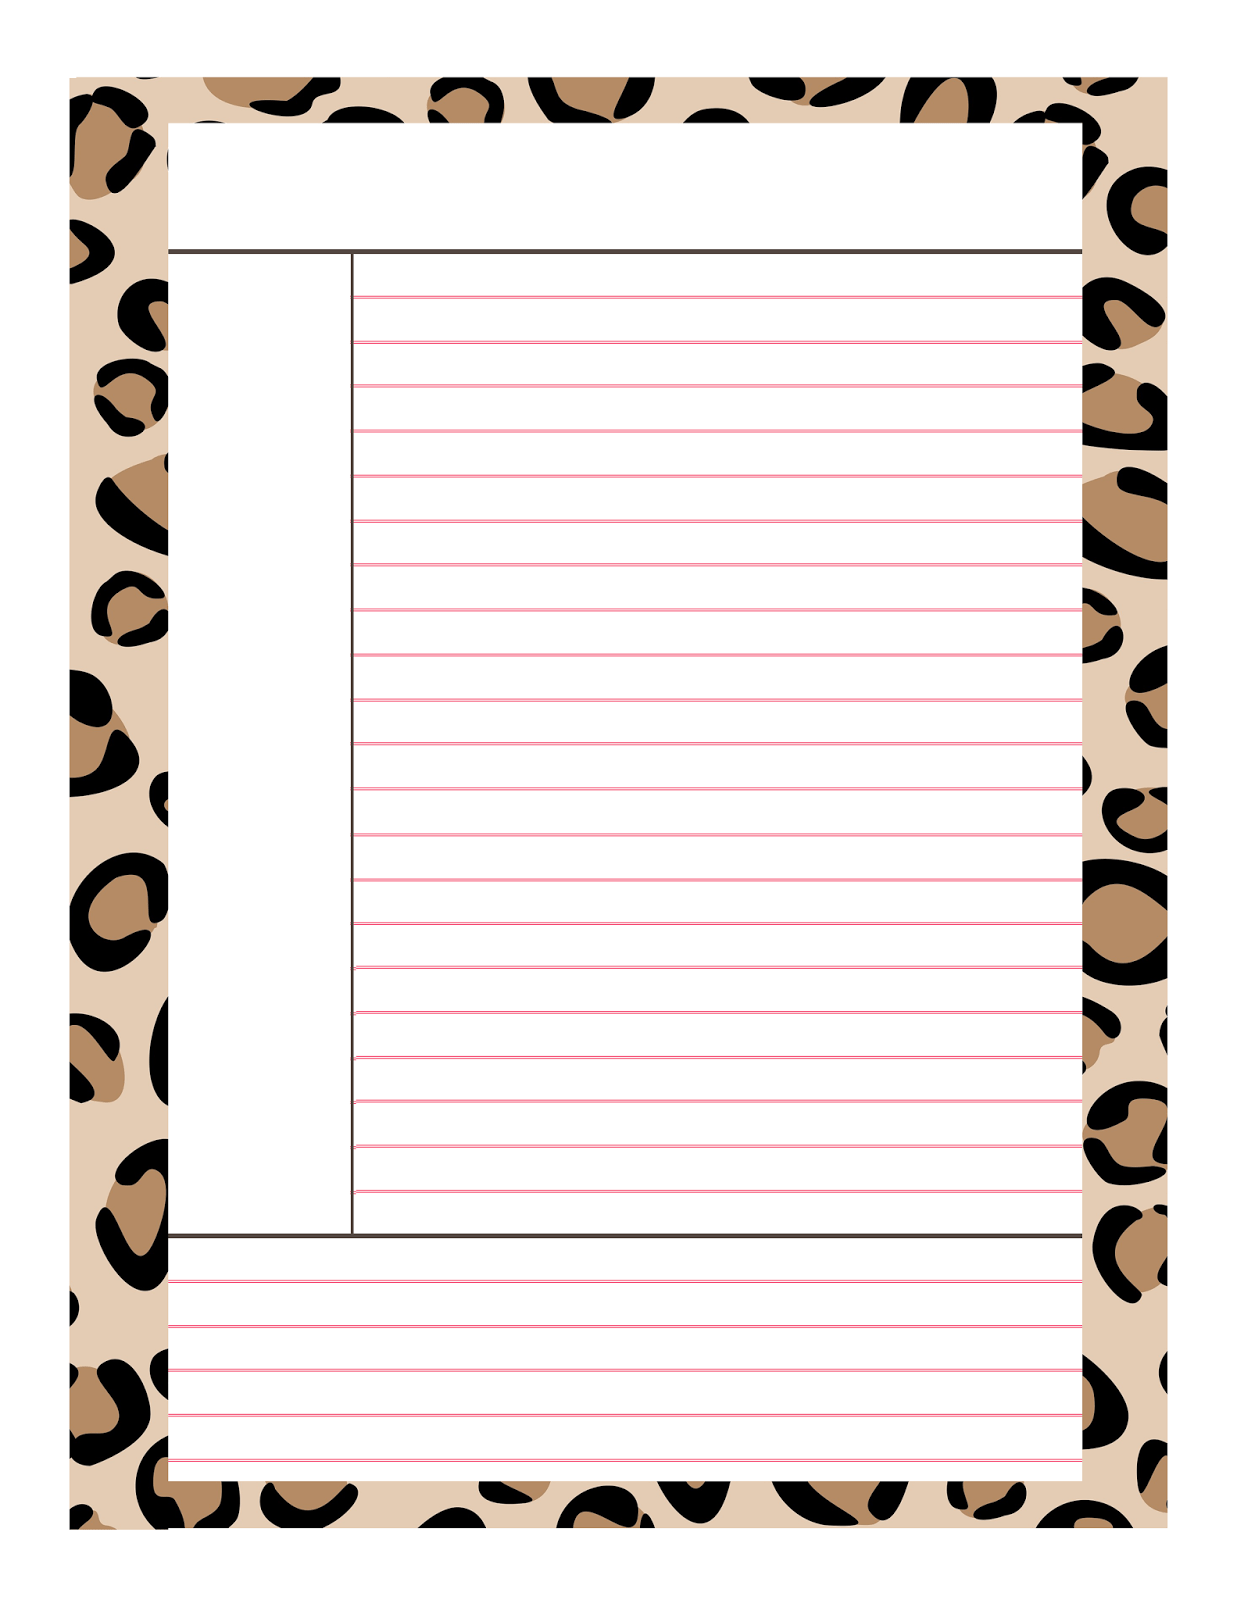 who says good notes cant be cute notes so here are some fun note taking templates just click save and print on a regular sheet of computer paper